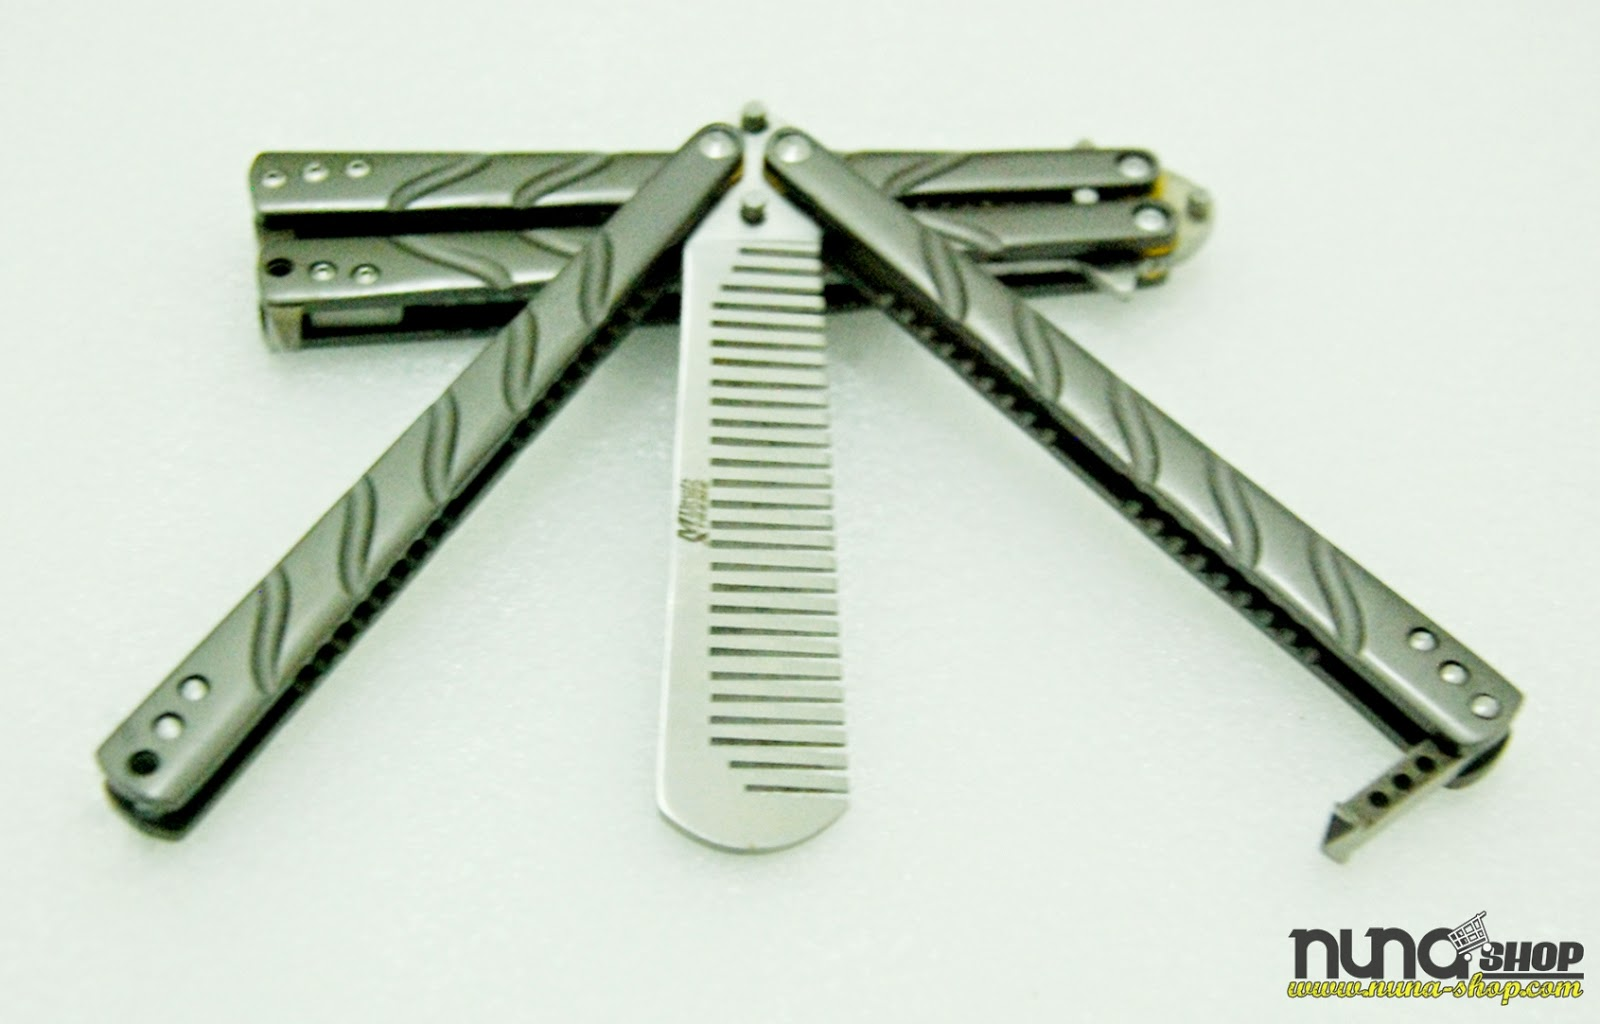 M Tech Extreme Butterfly Comb Hitam  Balisong Knife Comb  Balisong Sisir